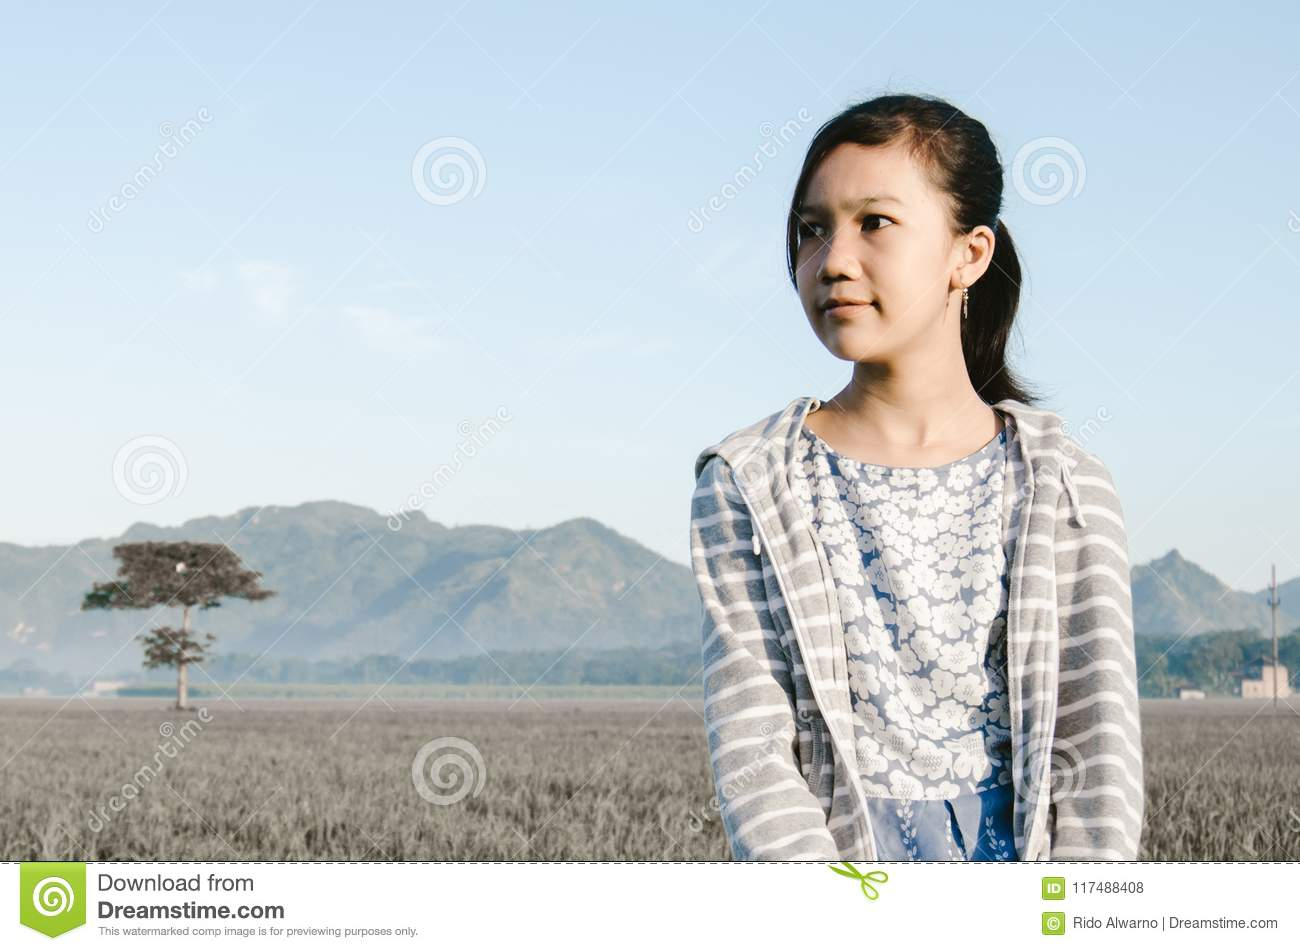 A lonely girl with expresive face